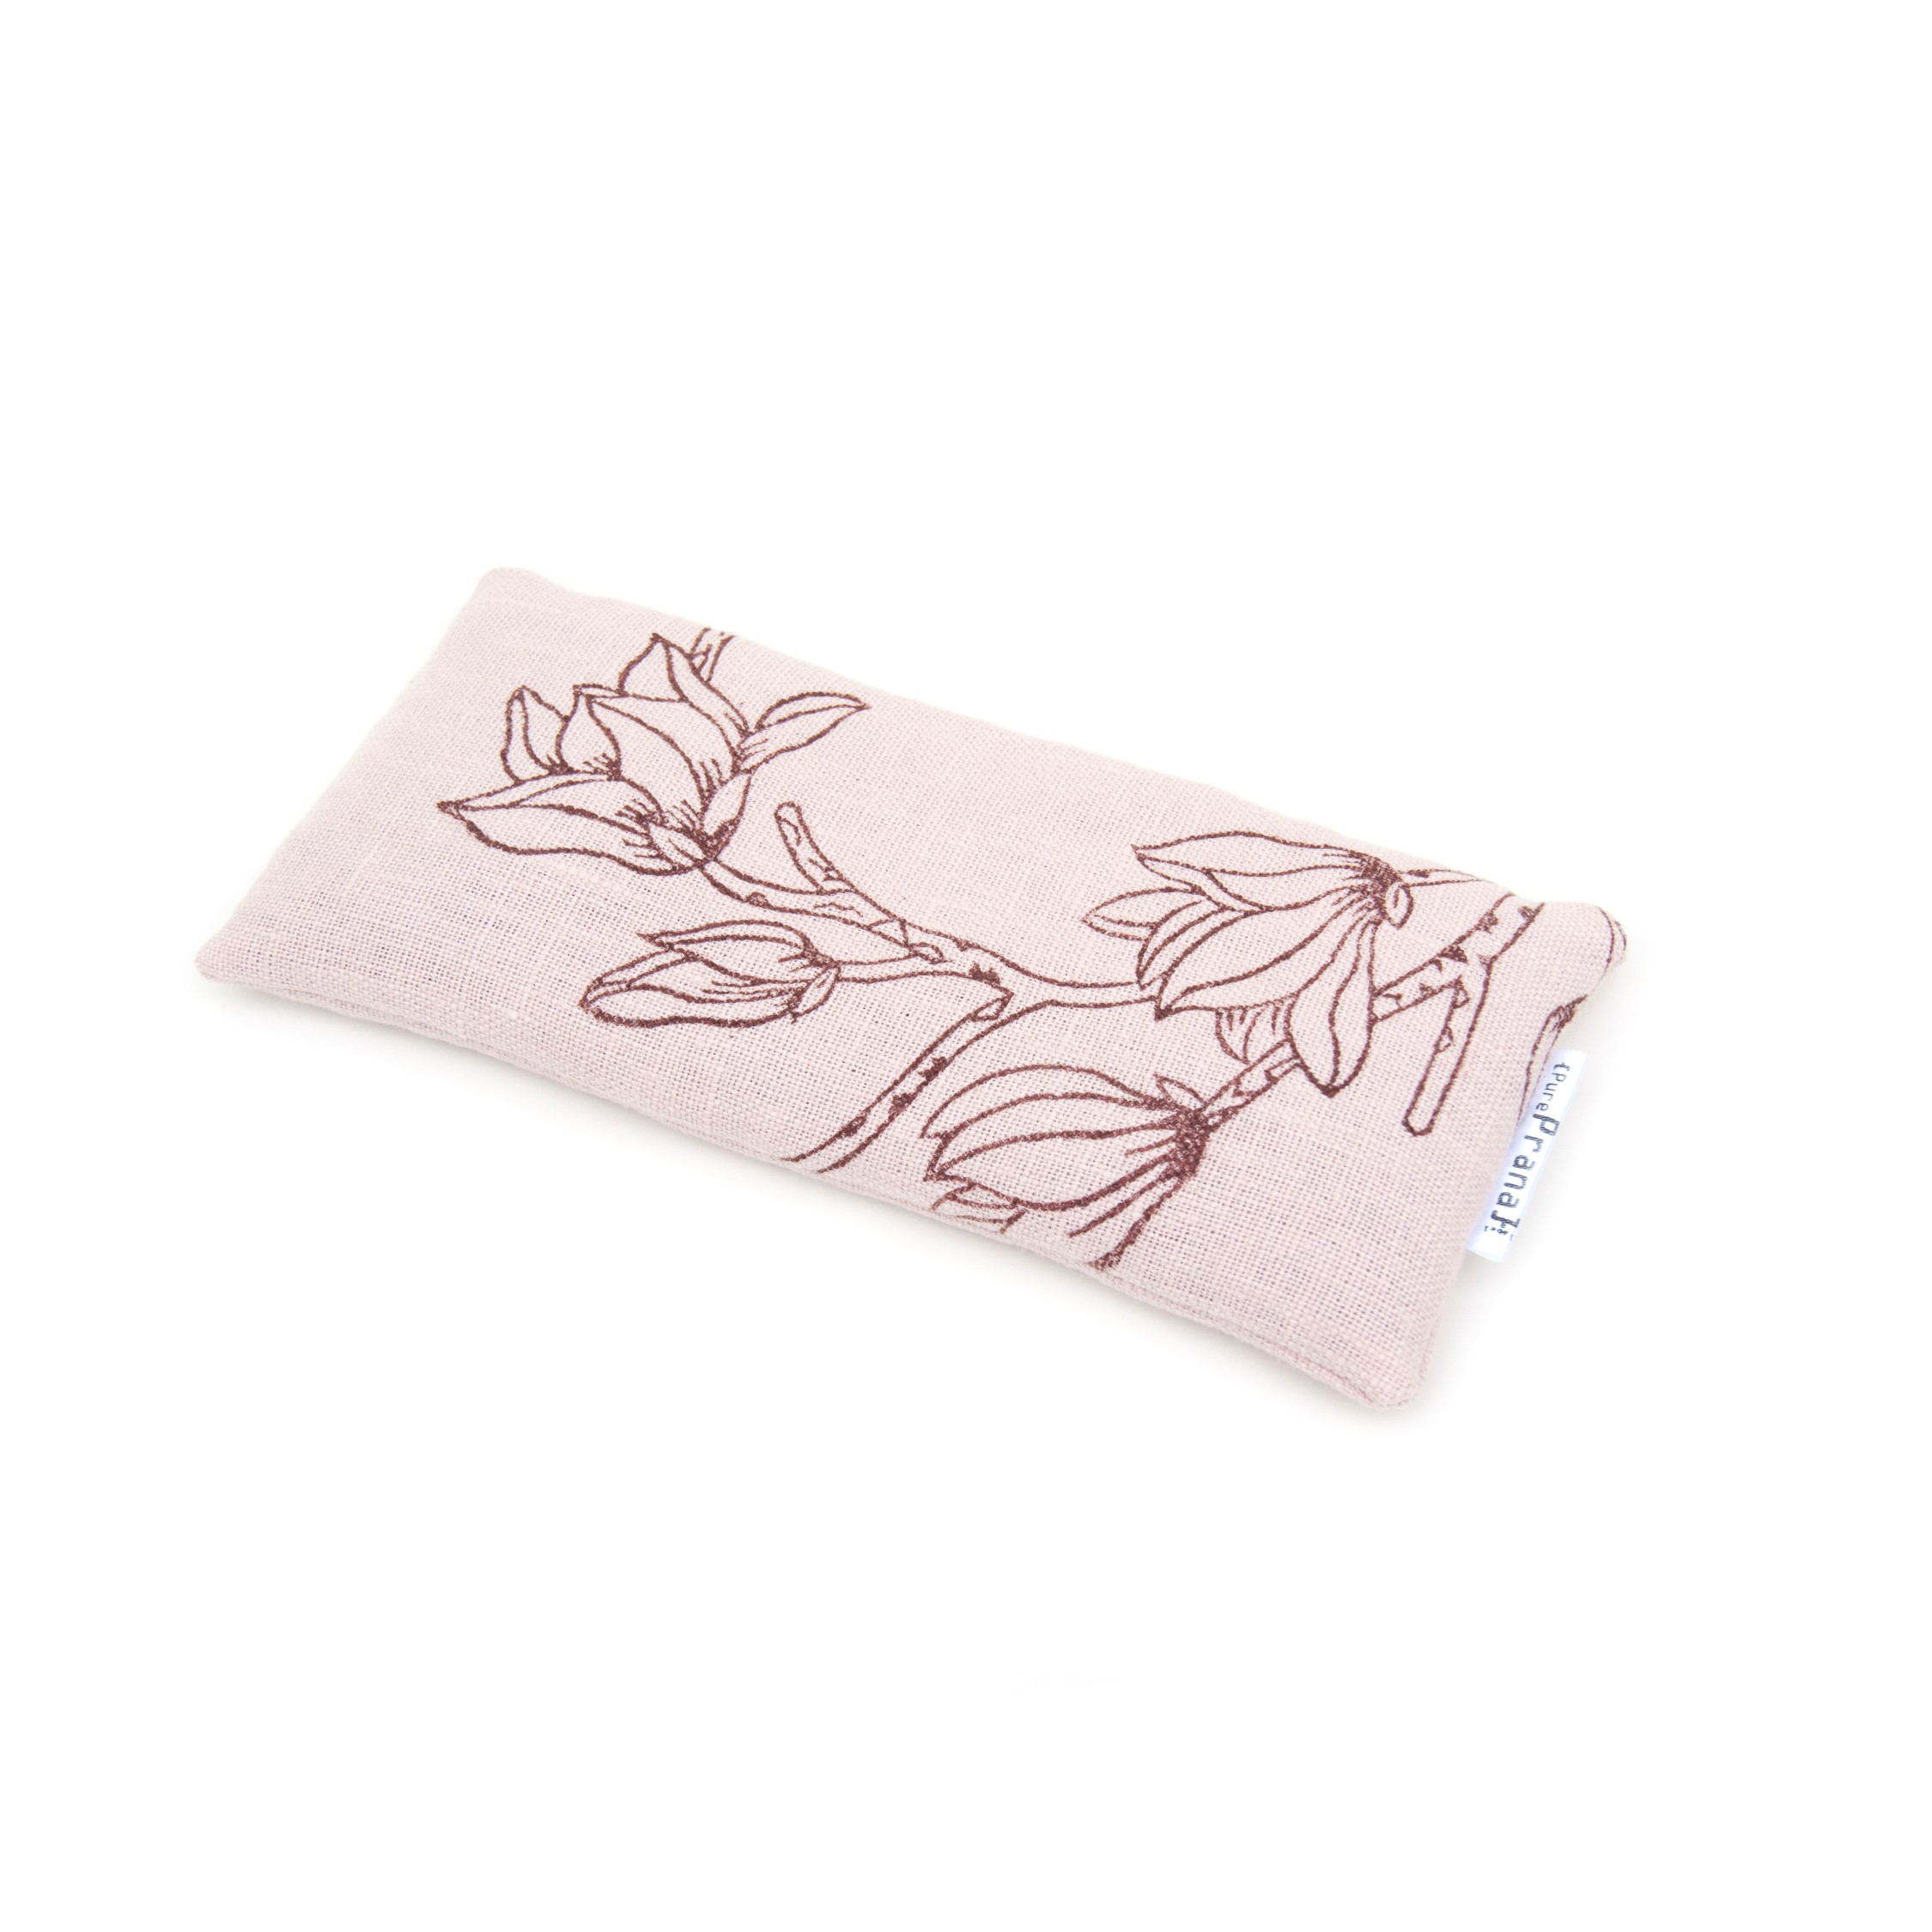 Lavender eye pillow Magnolia by Pure Prana Label